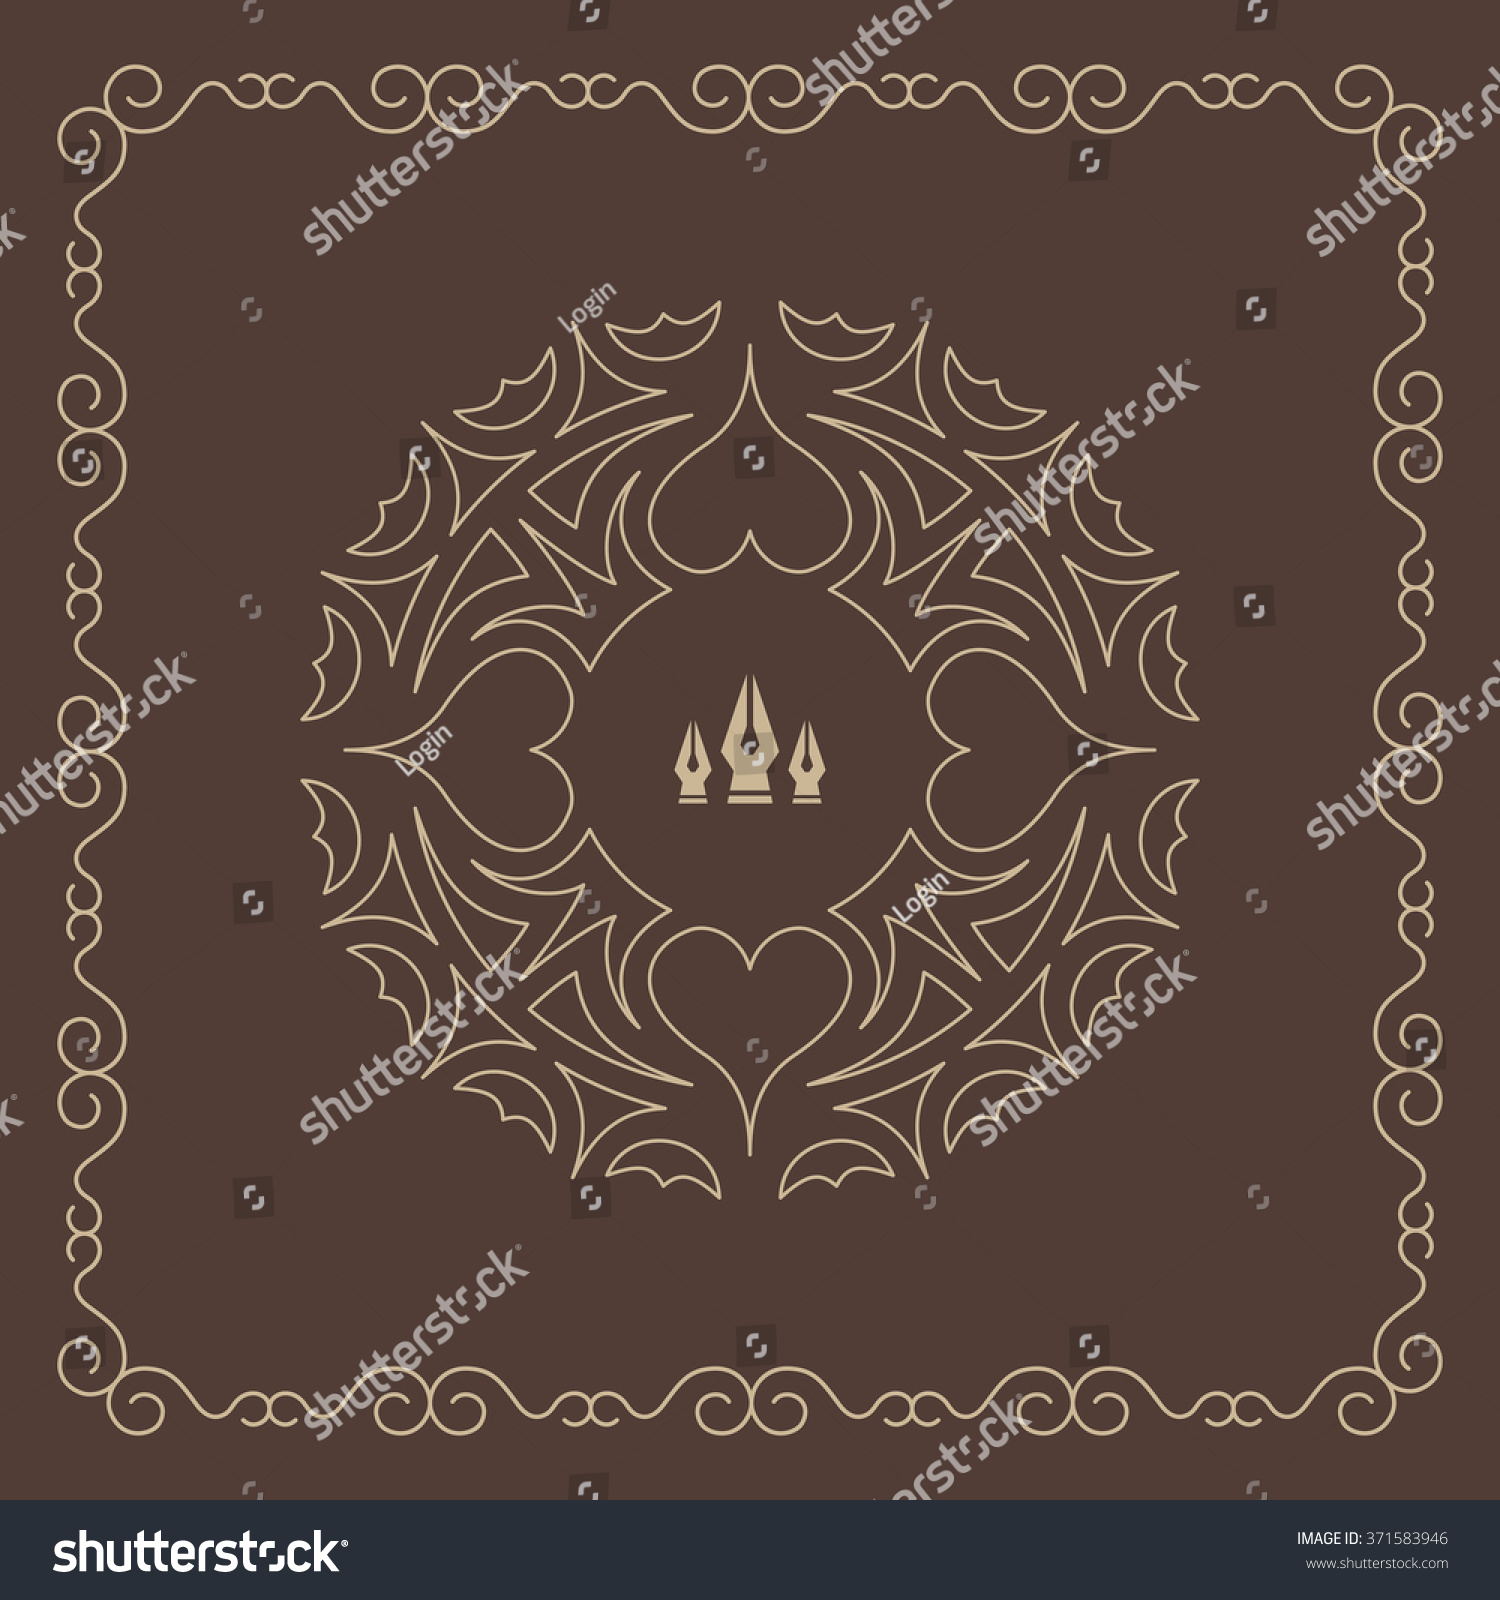 Ornament decoration ornate frame elegant element stock for A style text decoration